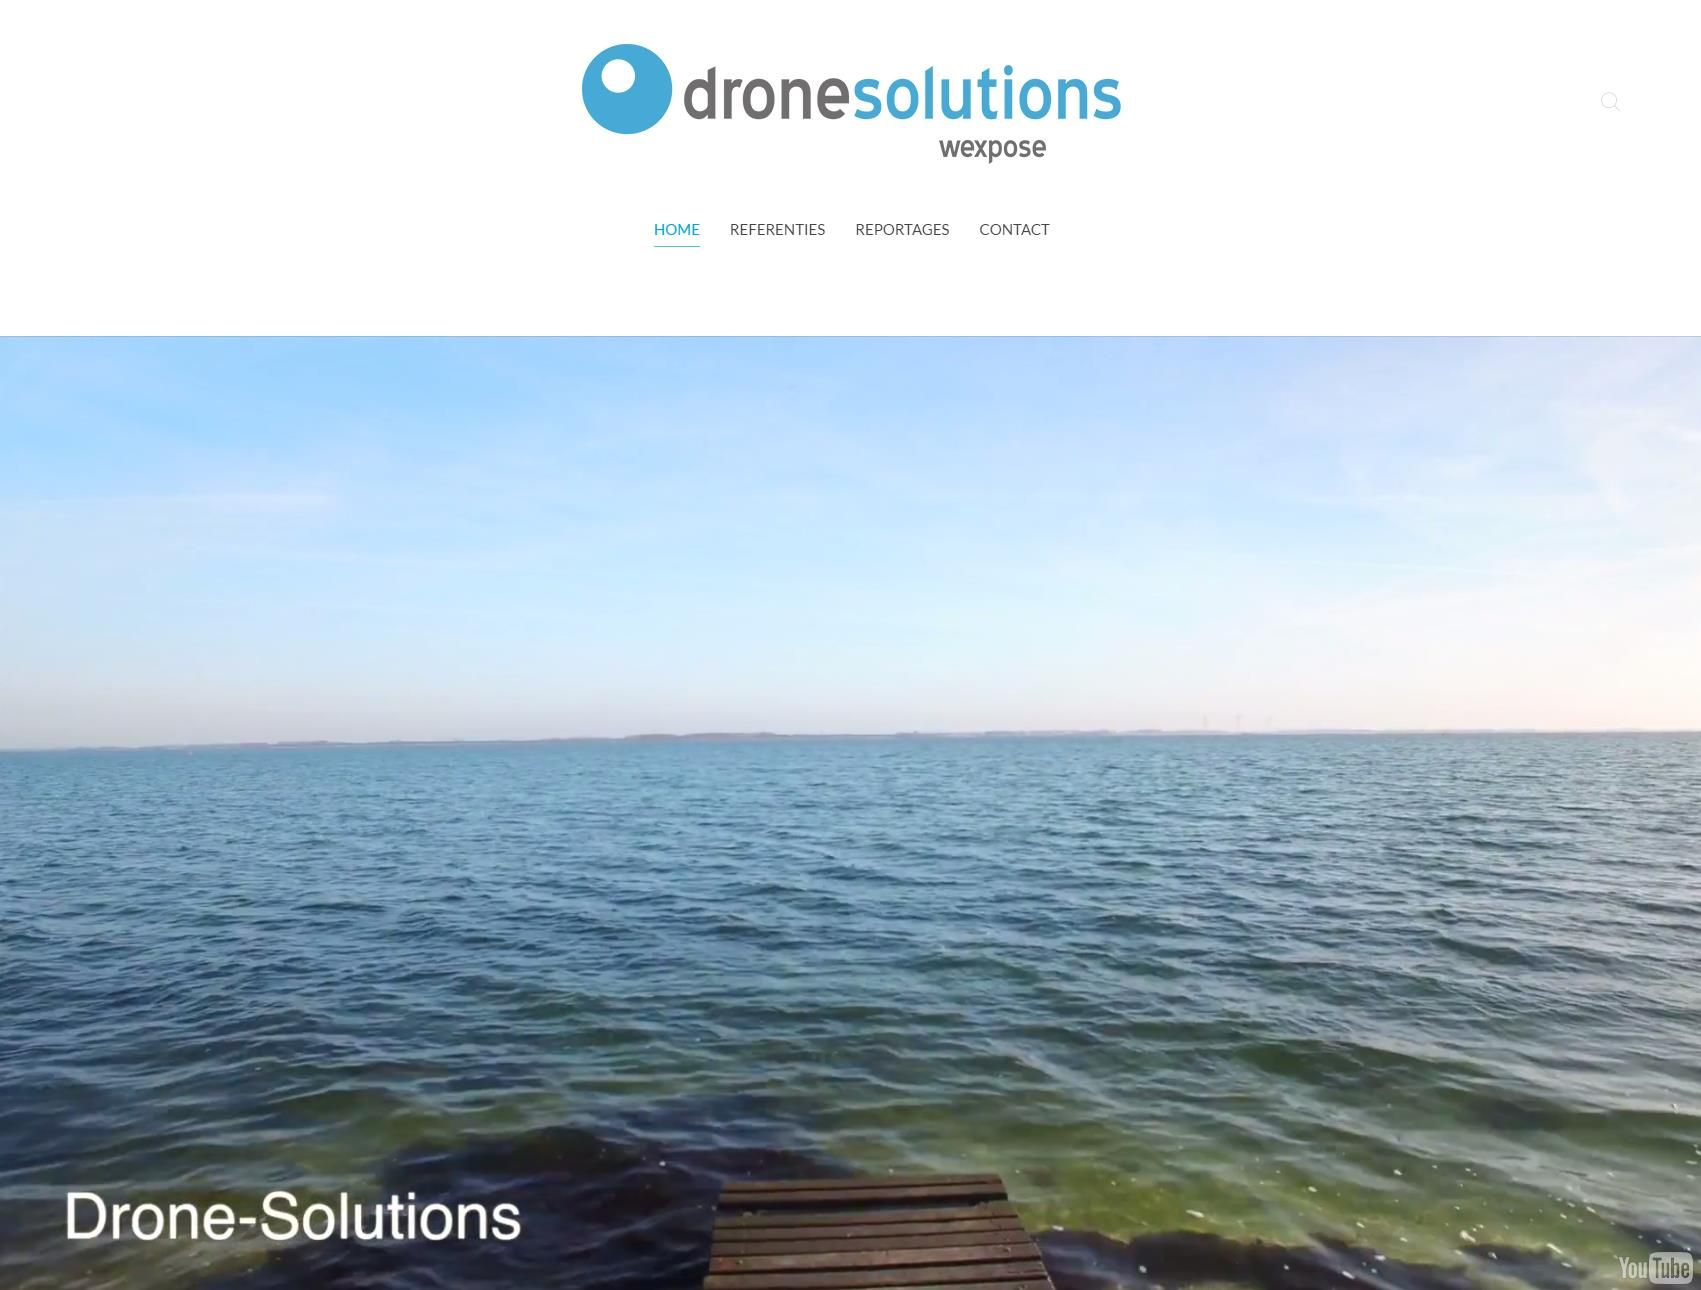 Website Drone-Solutions